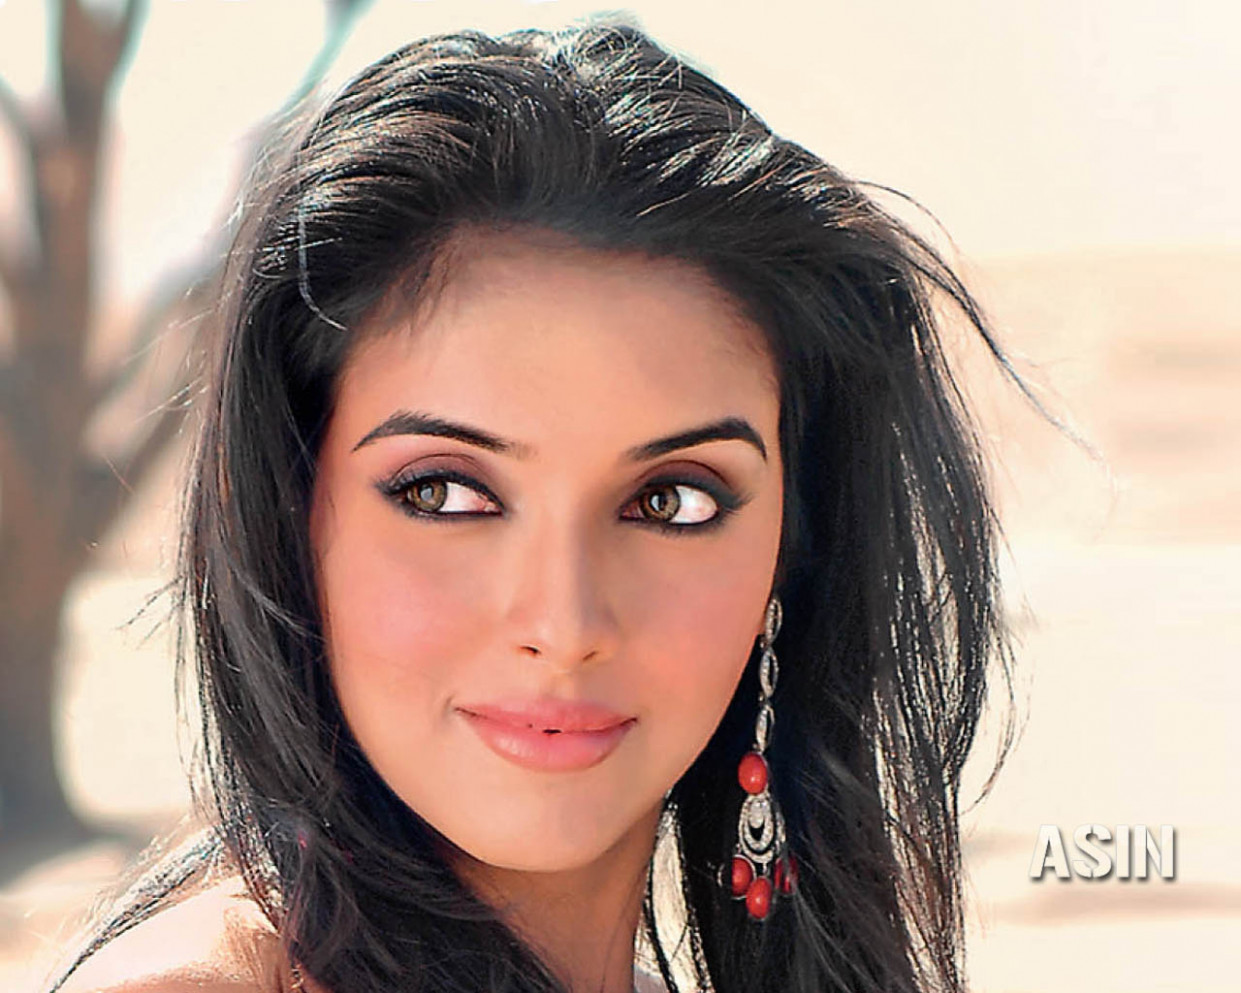 bollywood: Asin Wallpapers - Asin Pictures - Asin Photo ..